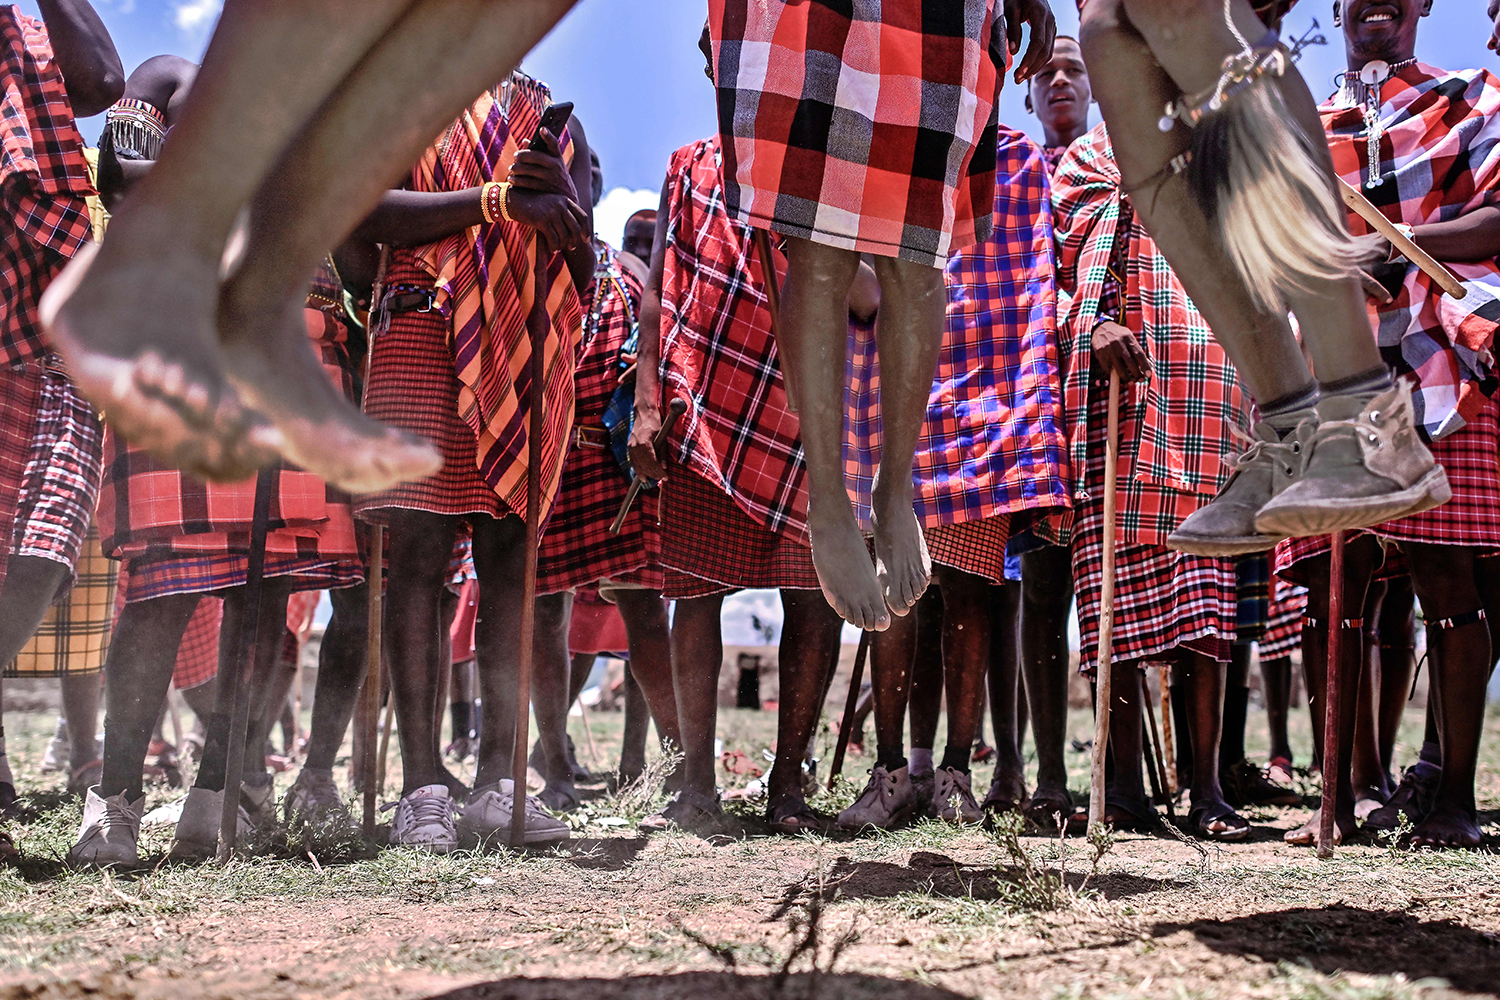 Men from the Kenyan Maasai tribe perform a traditional jumping ritual as they observe a rite of passage near Lemek town in Kenya's Narok County on Feb. 27. TONY KARUMBA/AFP via Getty Images